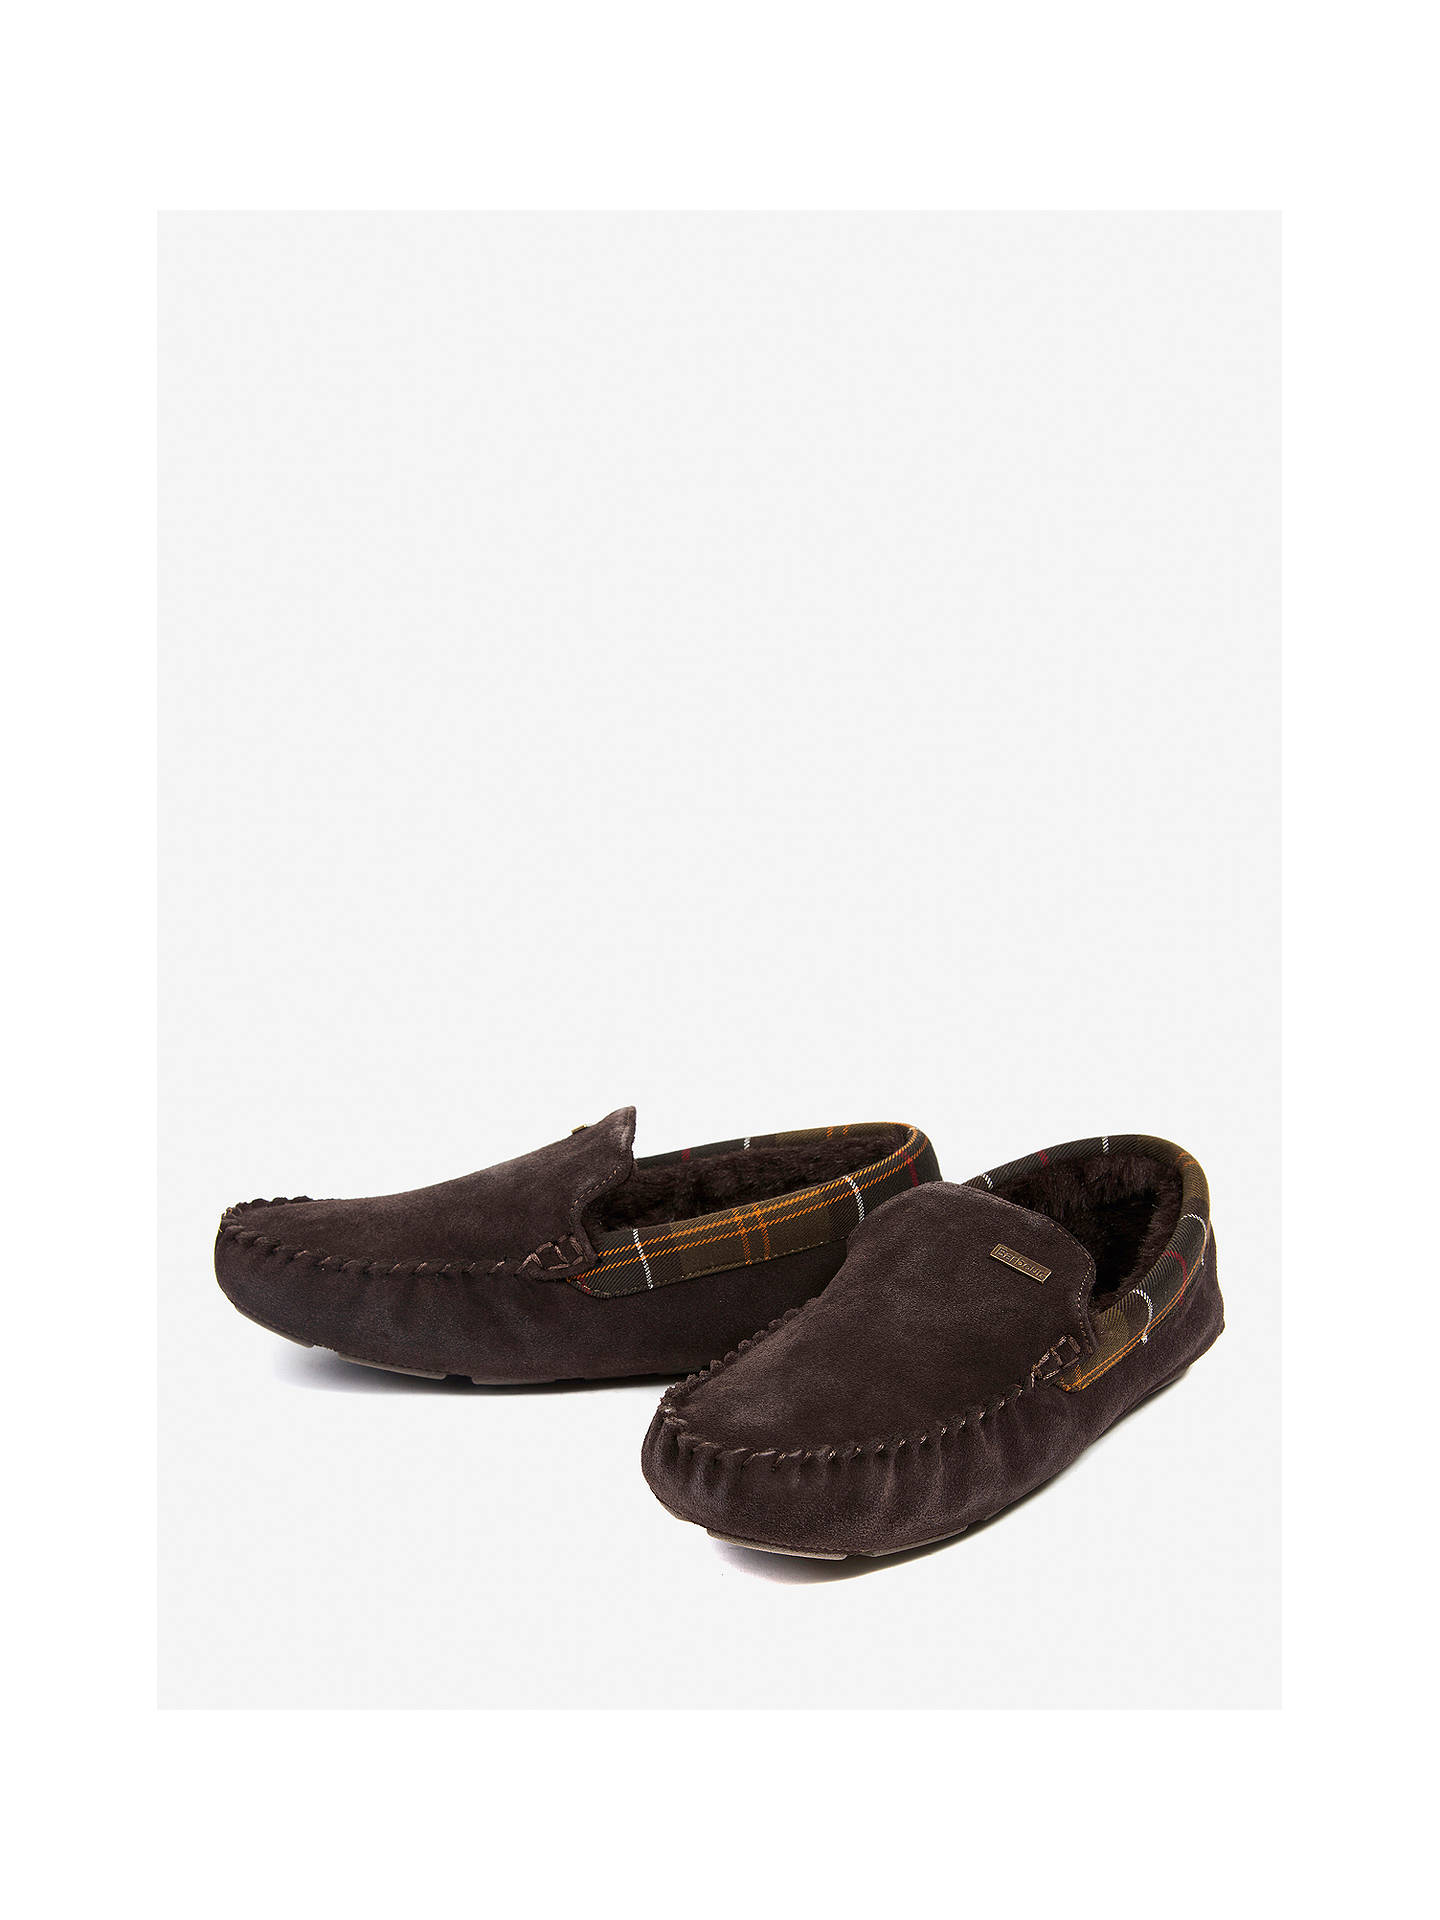 BuyBarbour Monty Suede Slippers, Chocolate, 7 Online at johnlewis.com